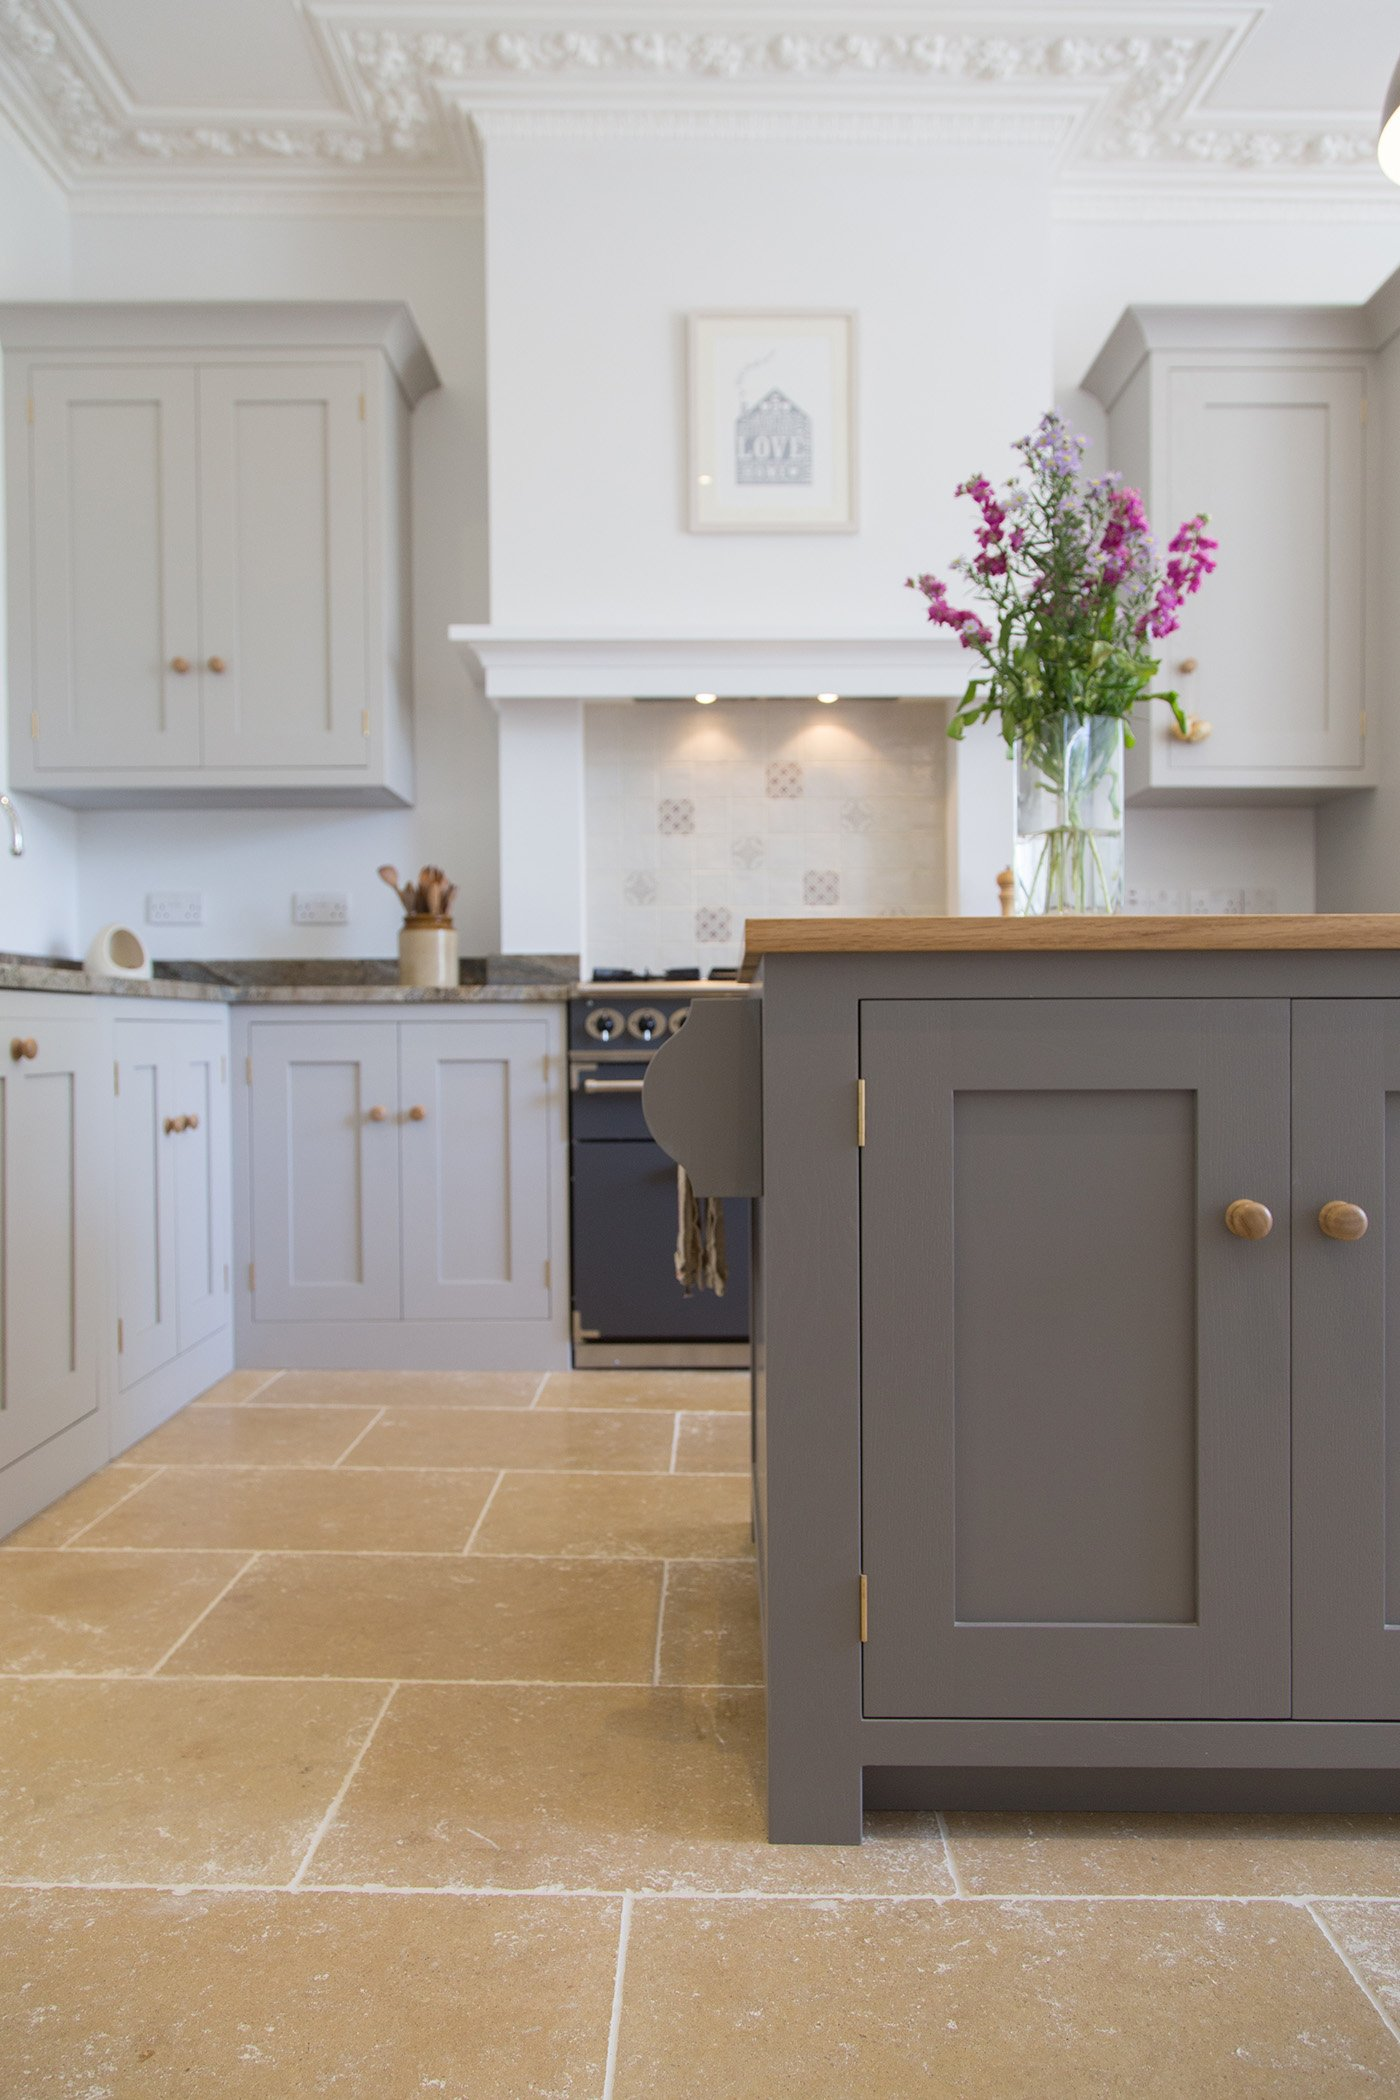 McCullagh- The Clifton Kitchen